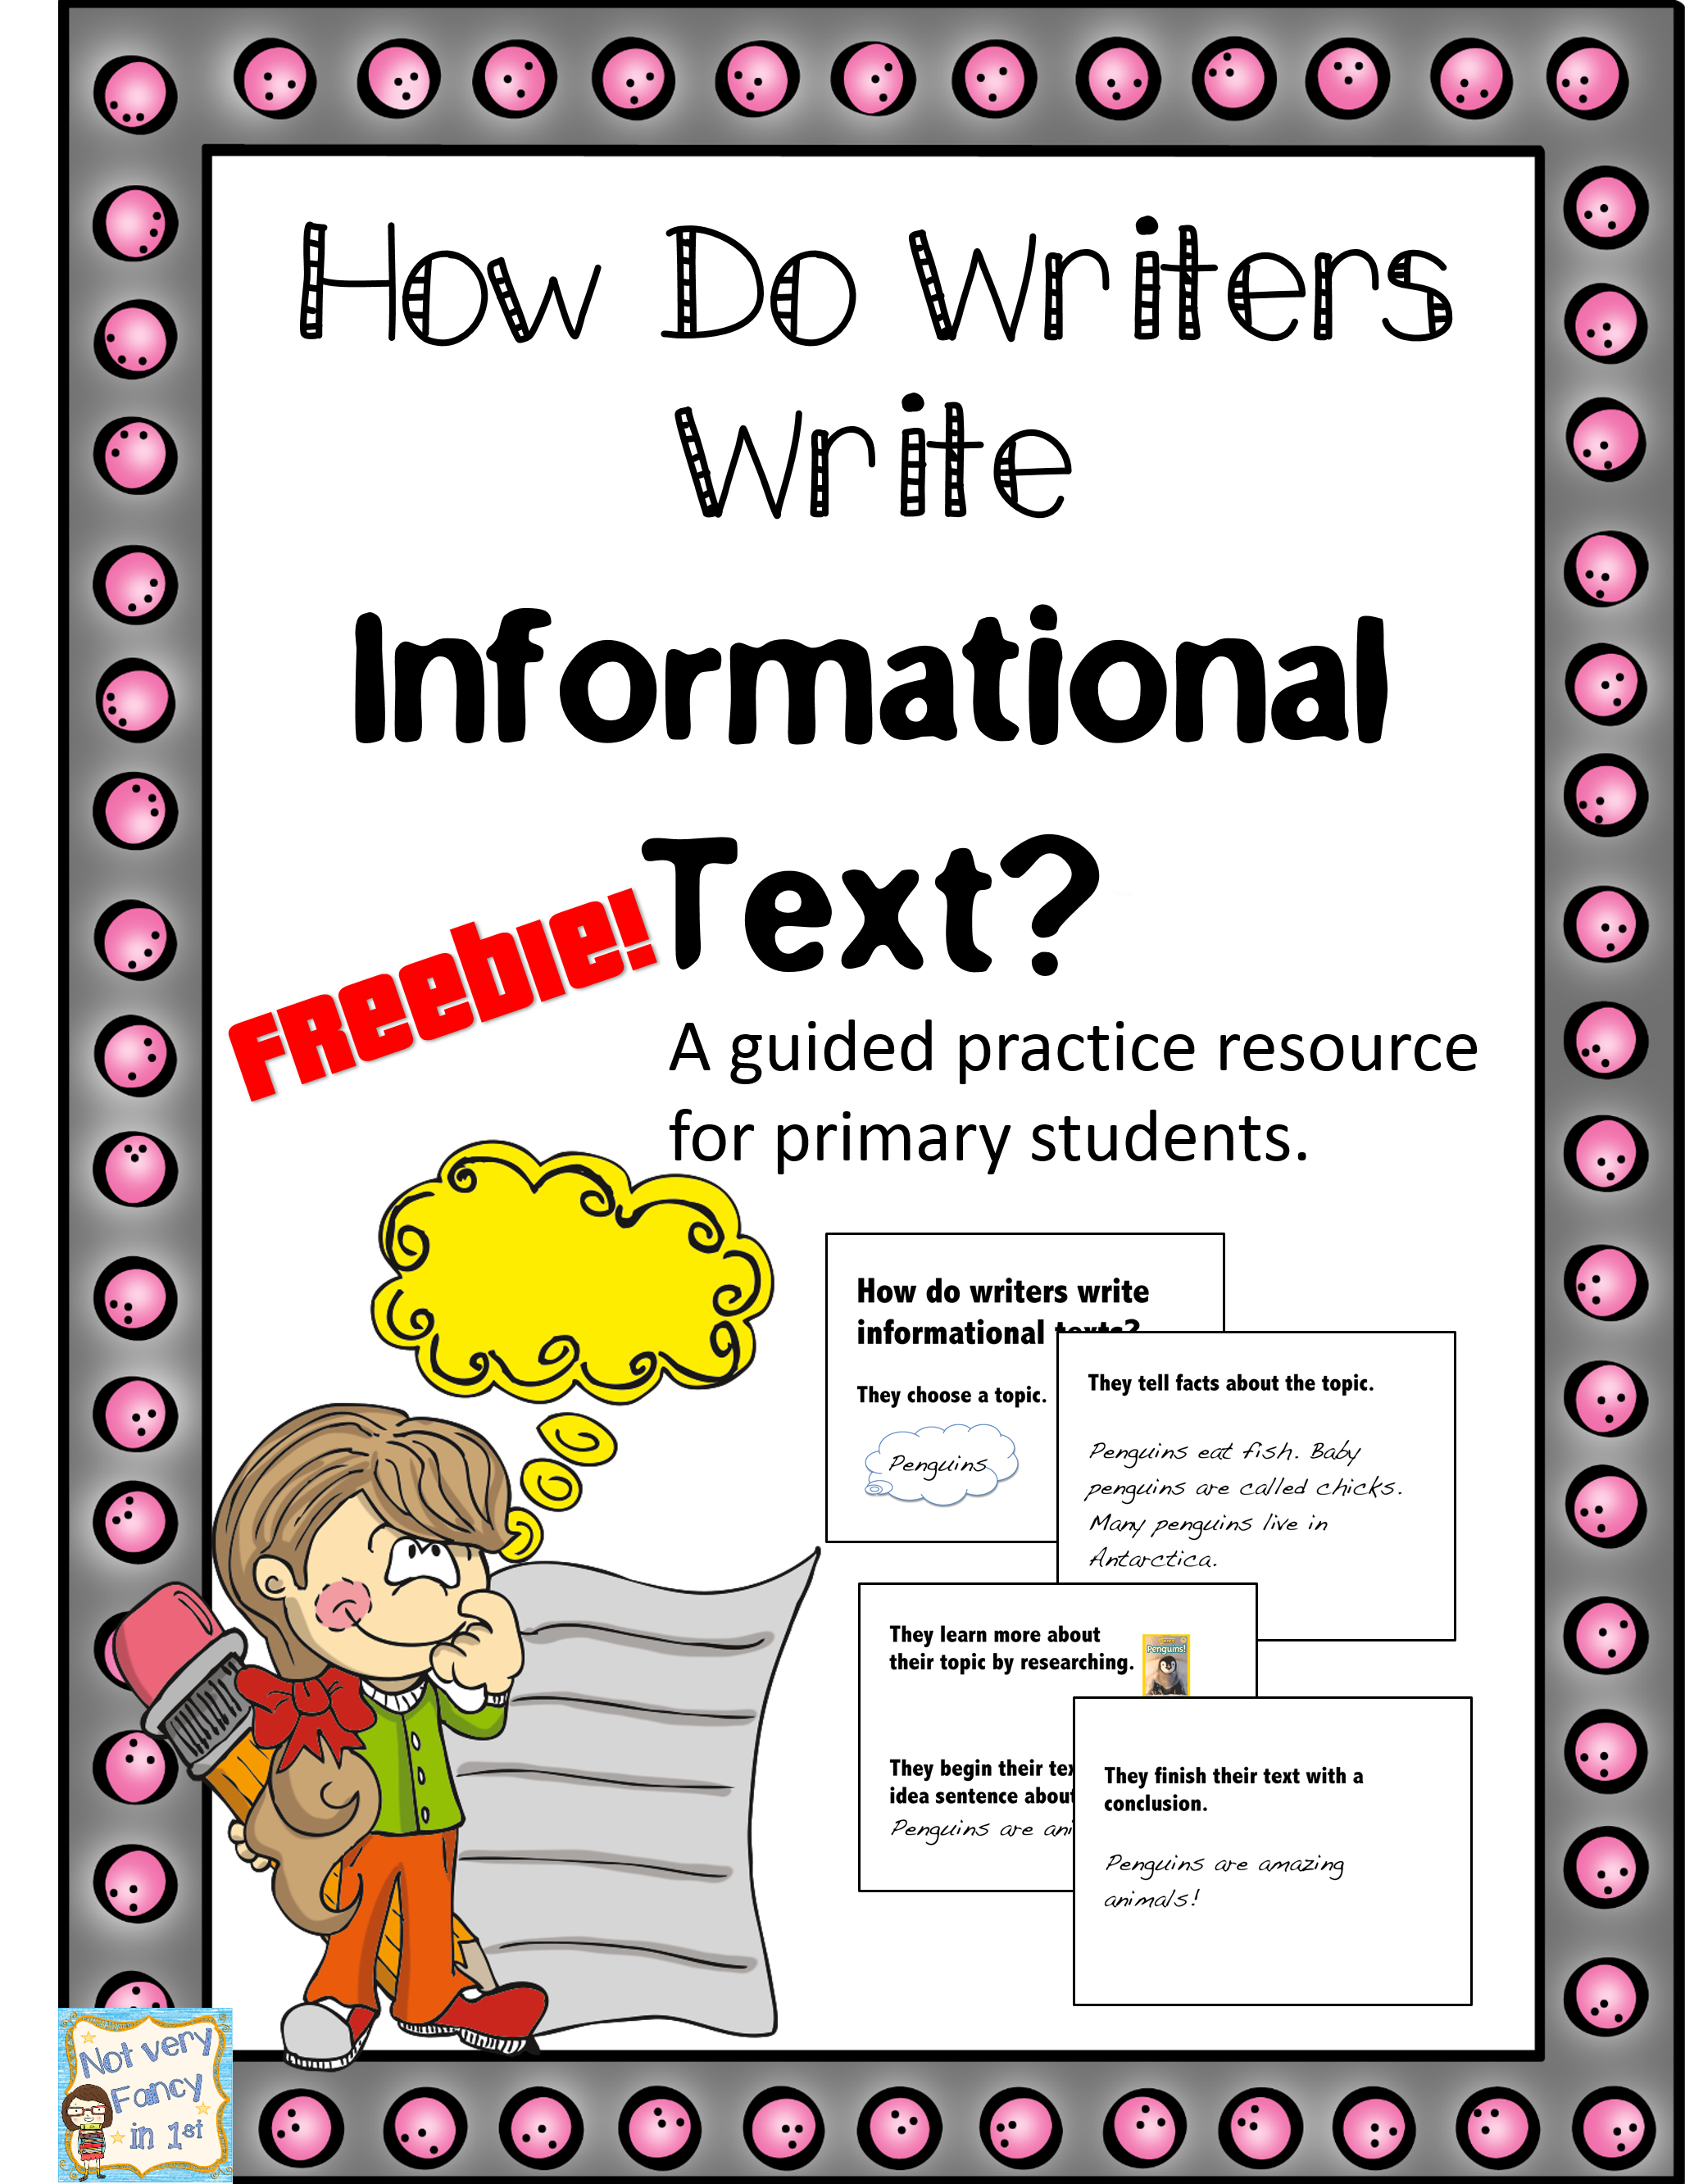 Excellent Resource For Guiding Primary Students To Master